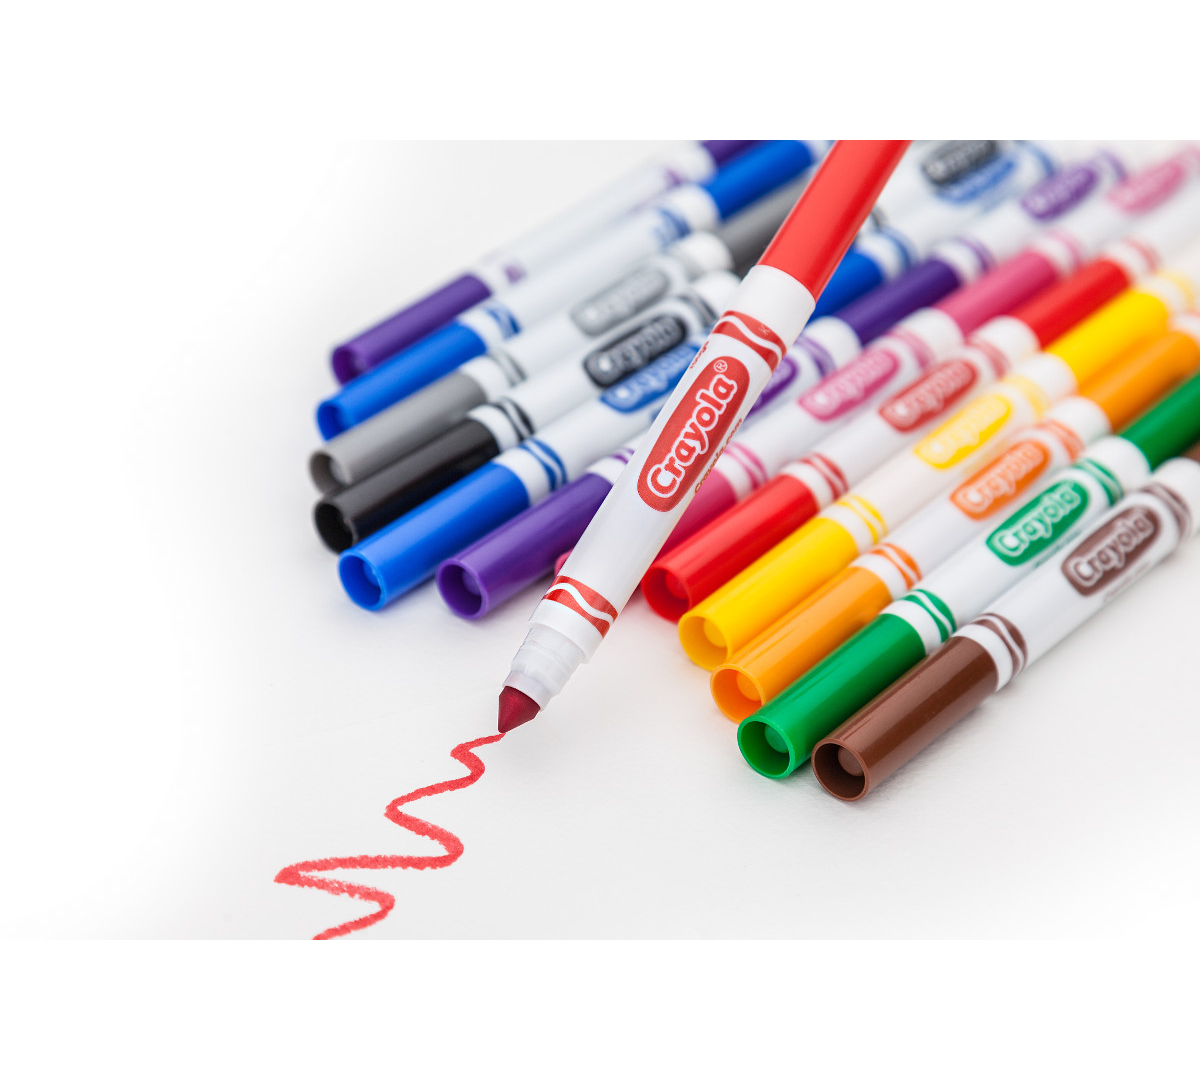 Broad Line Markers, Classic Colors, 10 Count | Crayola.com ...Crayola Markers Images Clipart